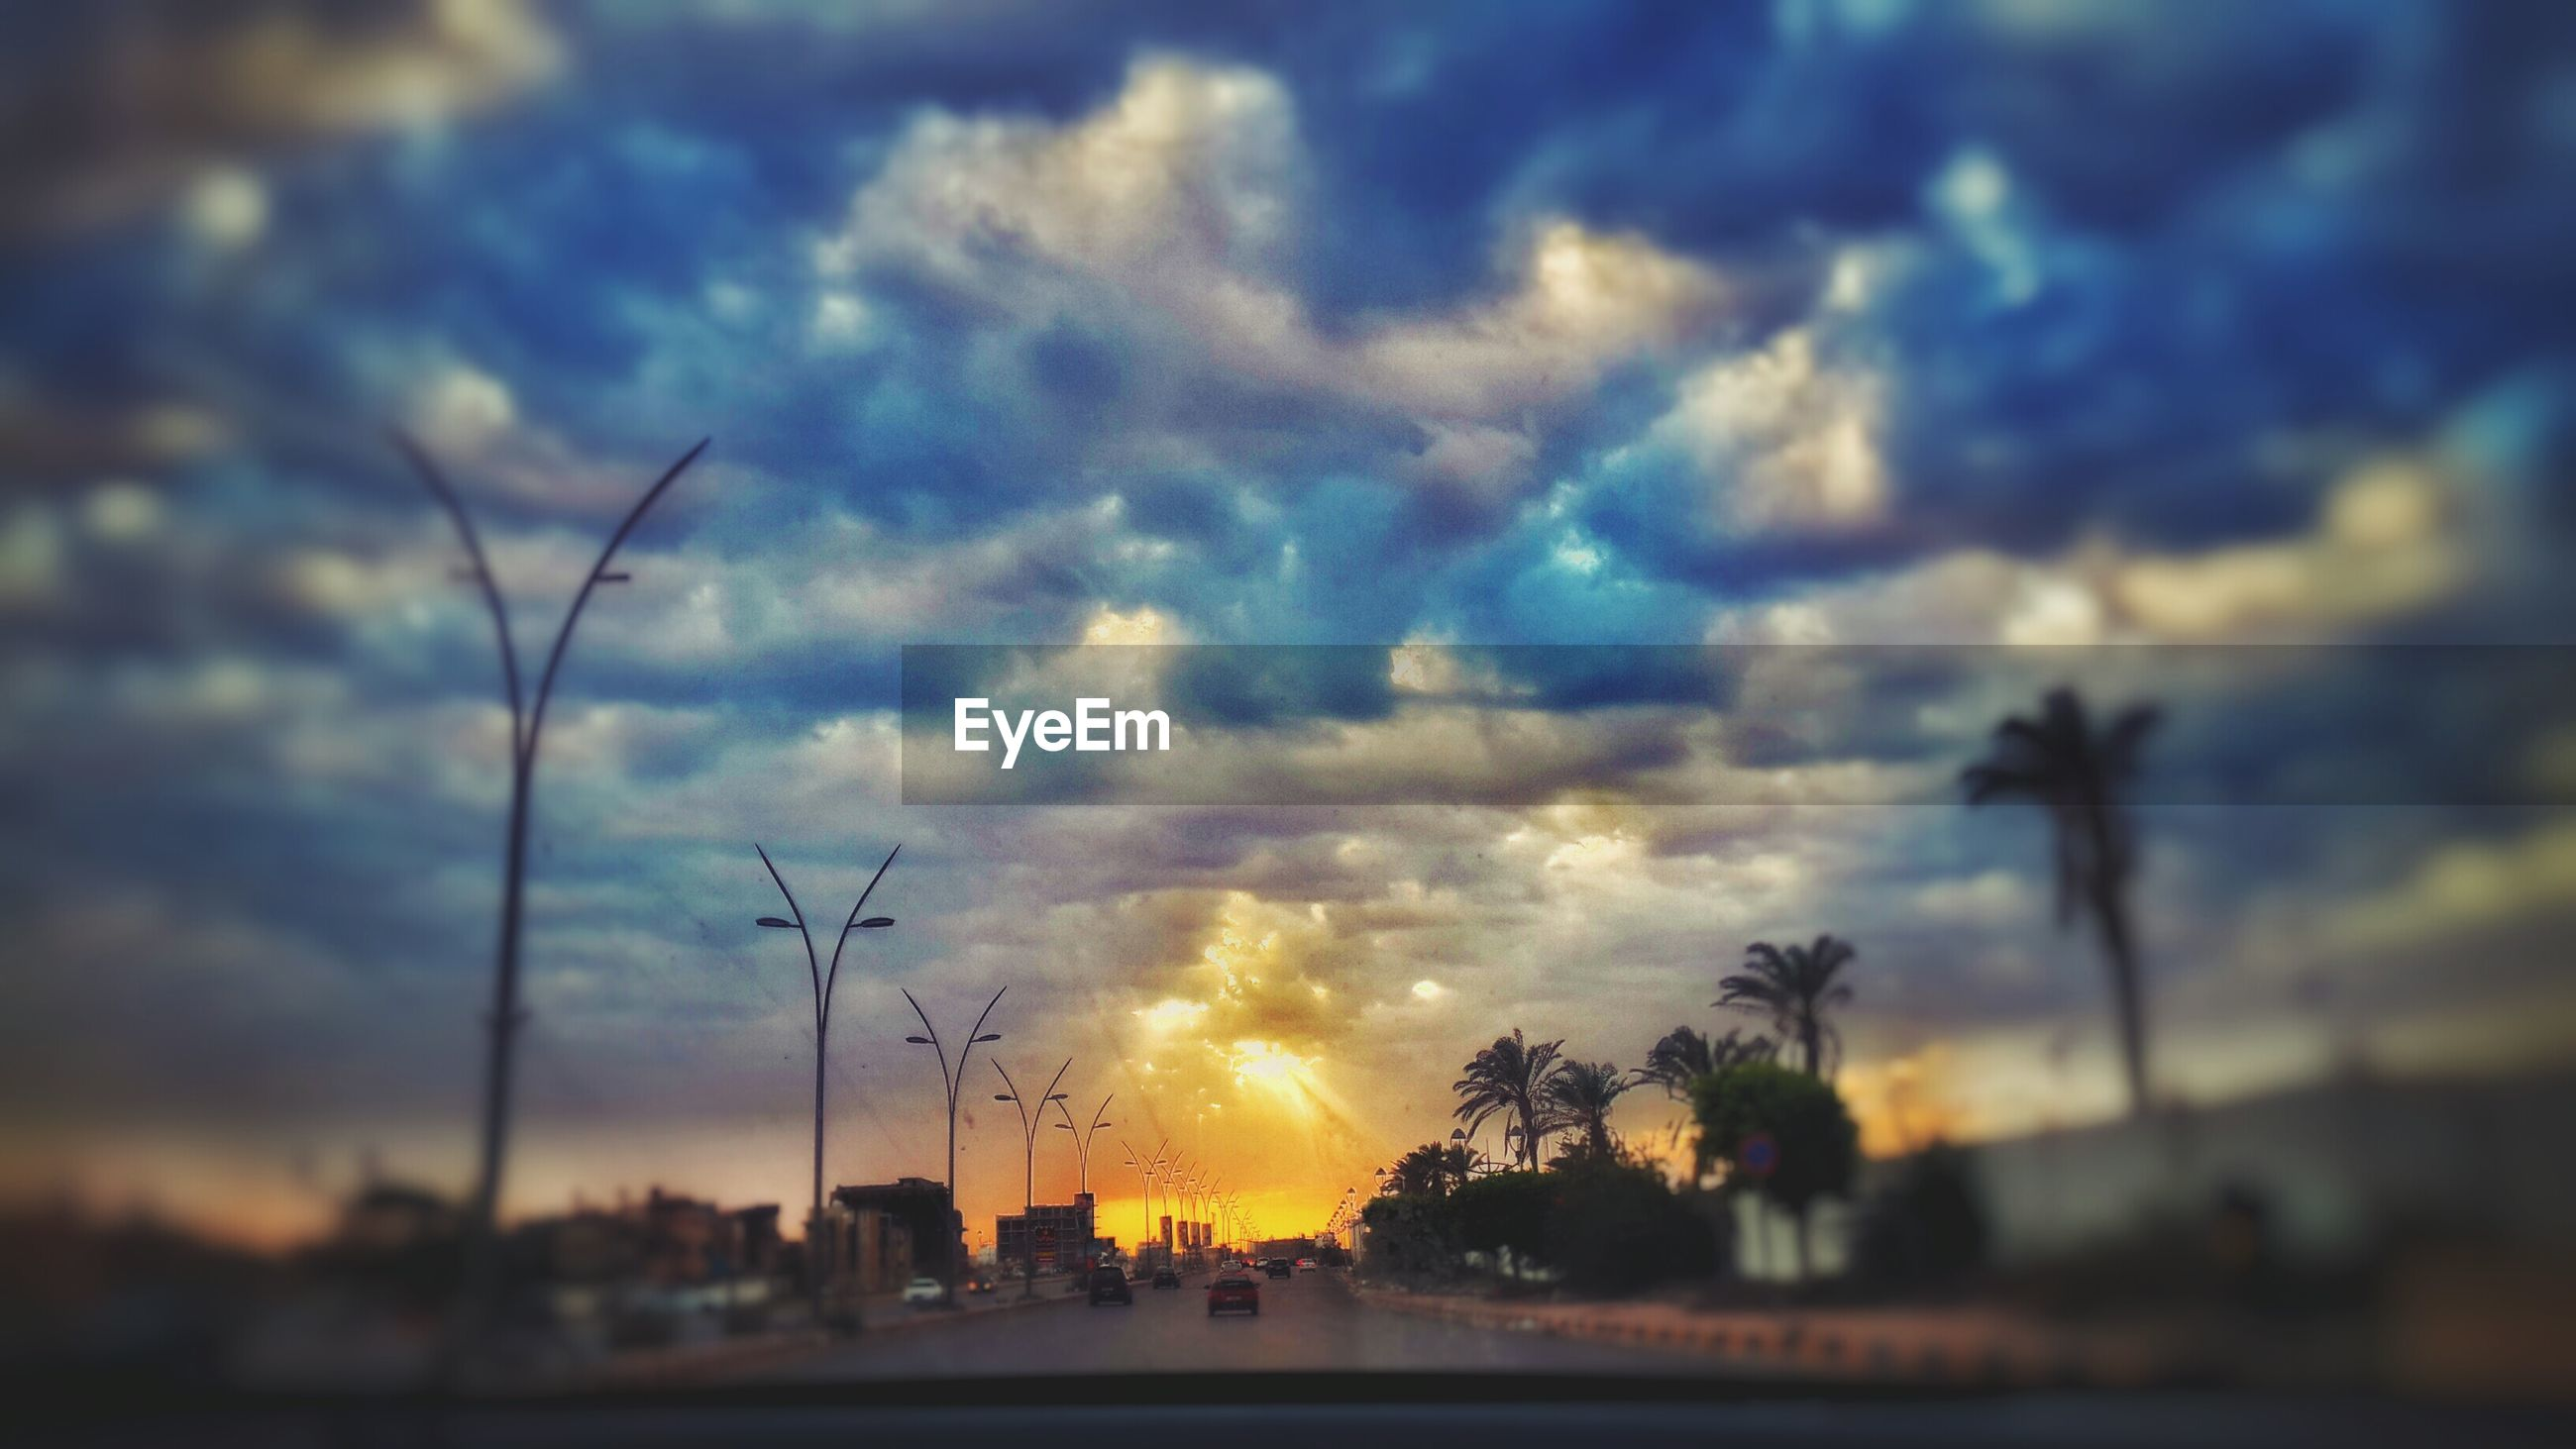 sunset, sky, cloud - sky, silhouette, tree, road, cloudy, beauty in nature, nature, orange color, cloud, transportation, tranquility, scenics, tranquil scene, street light, street, car, dramatic sky, outdoors